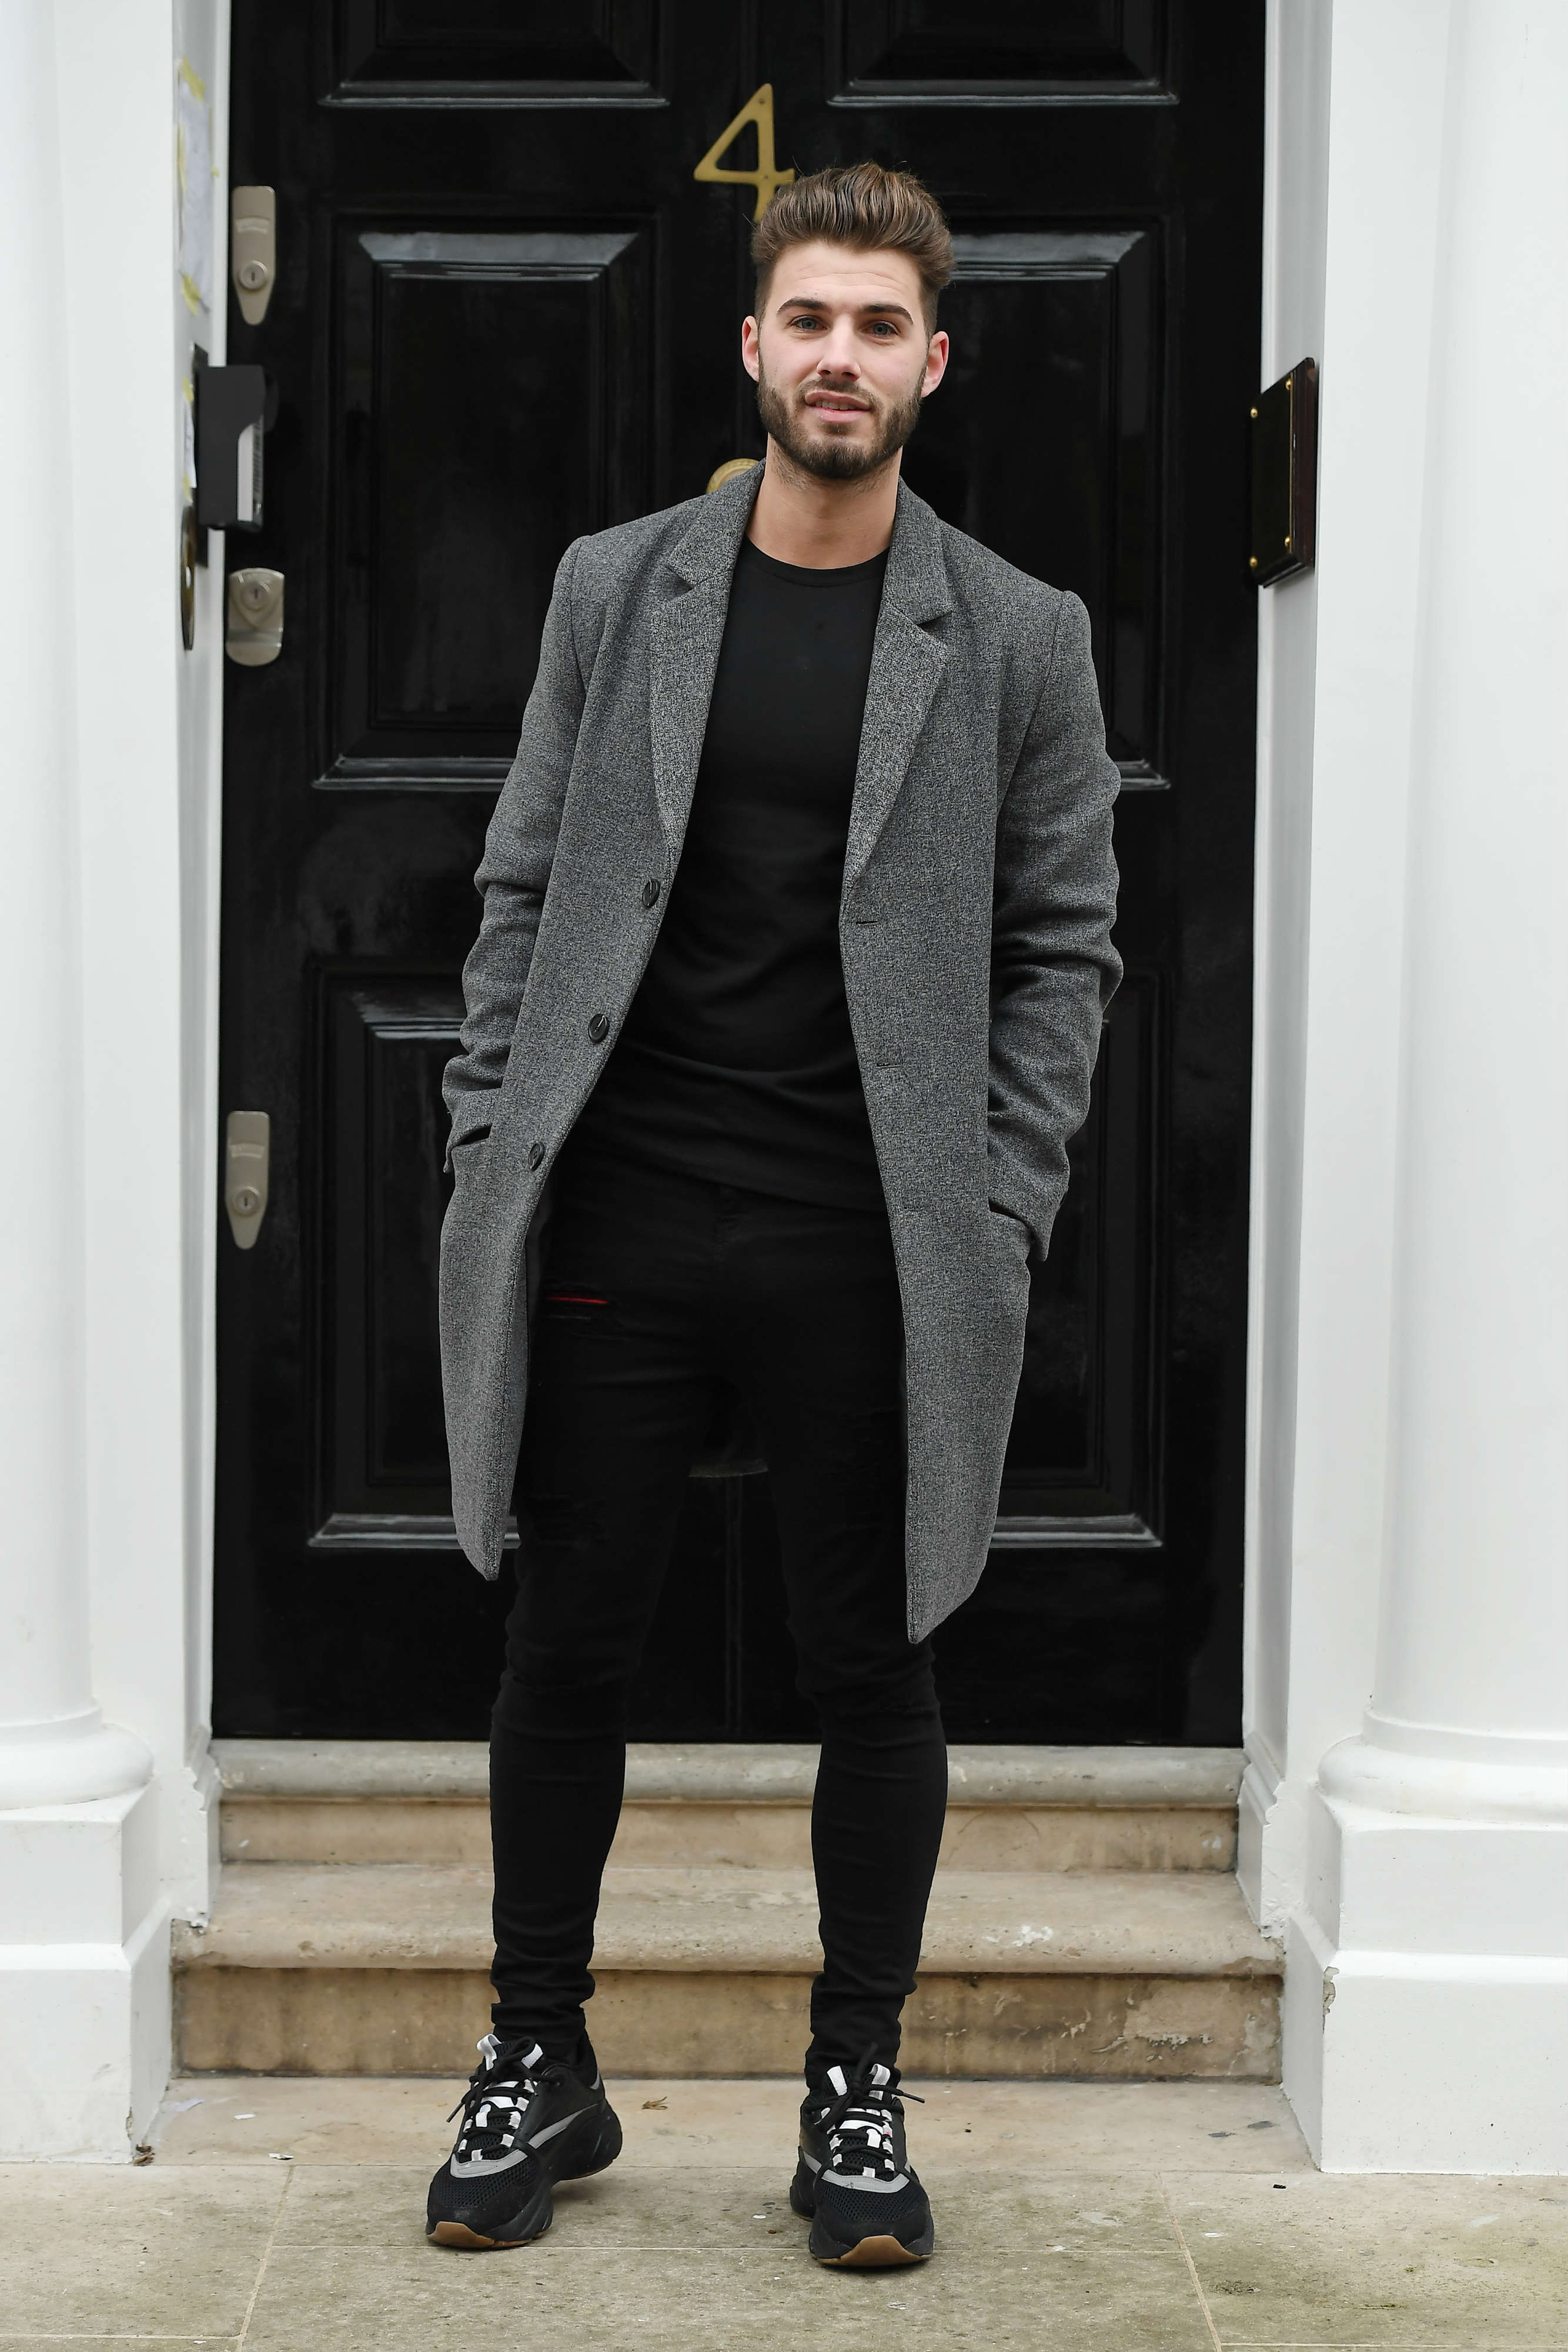 TV Personality Joshua Ritchie joins Celebs Go Dating Season 8 Line-Up